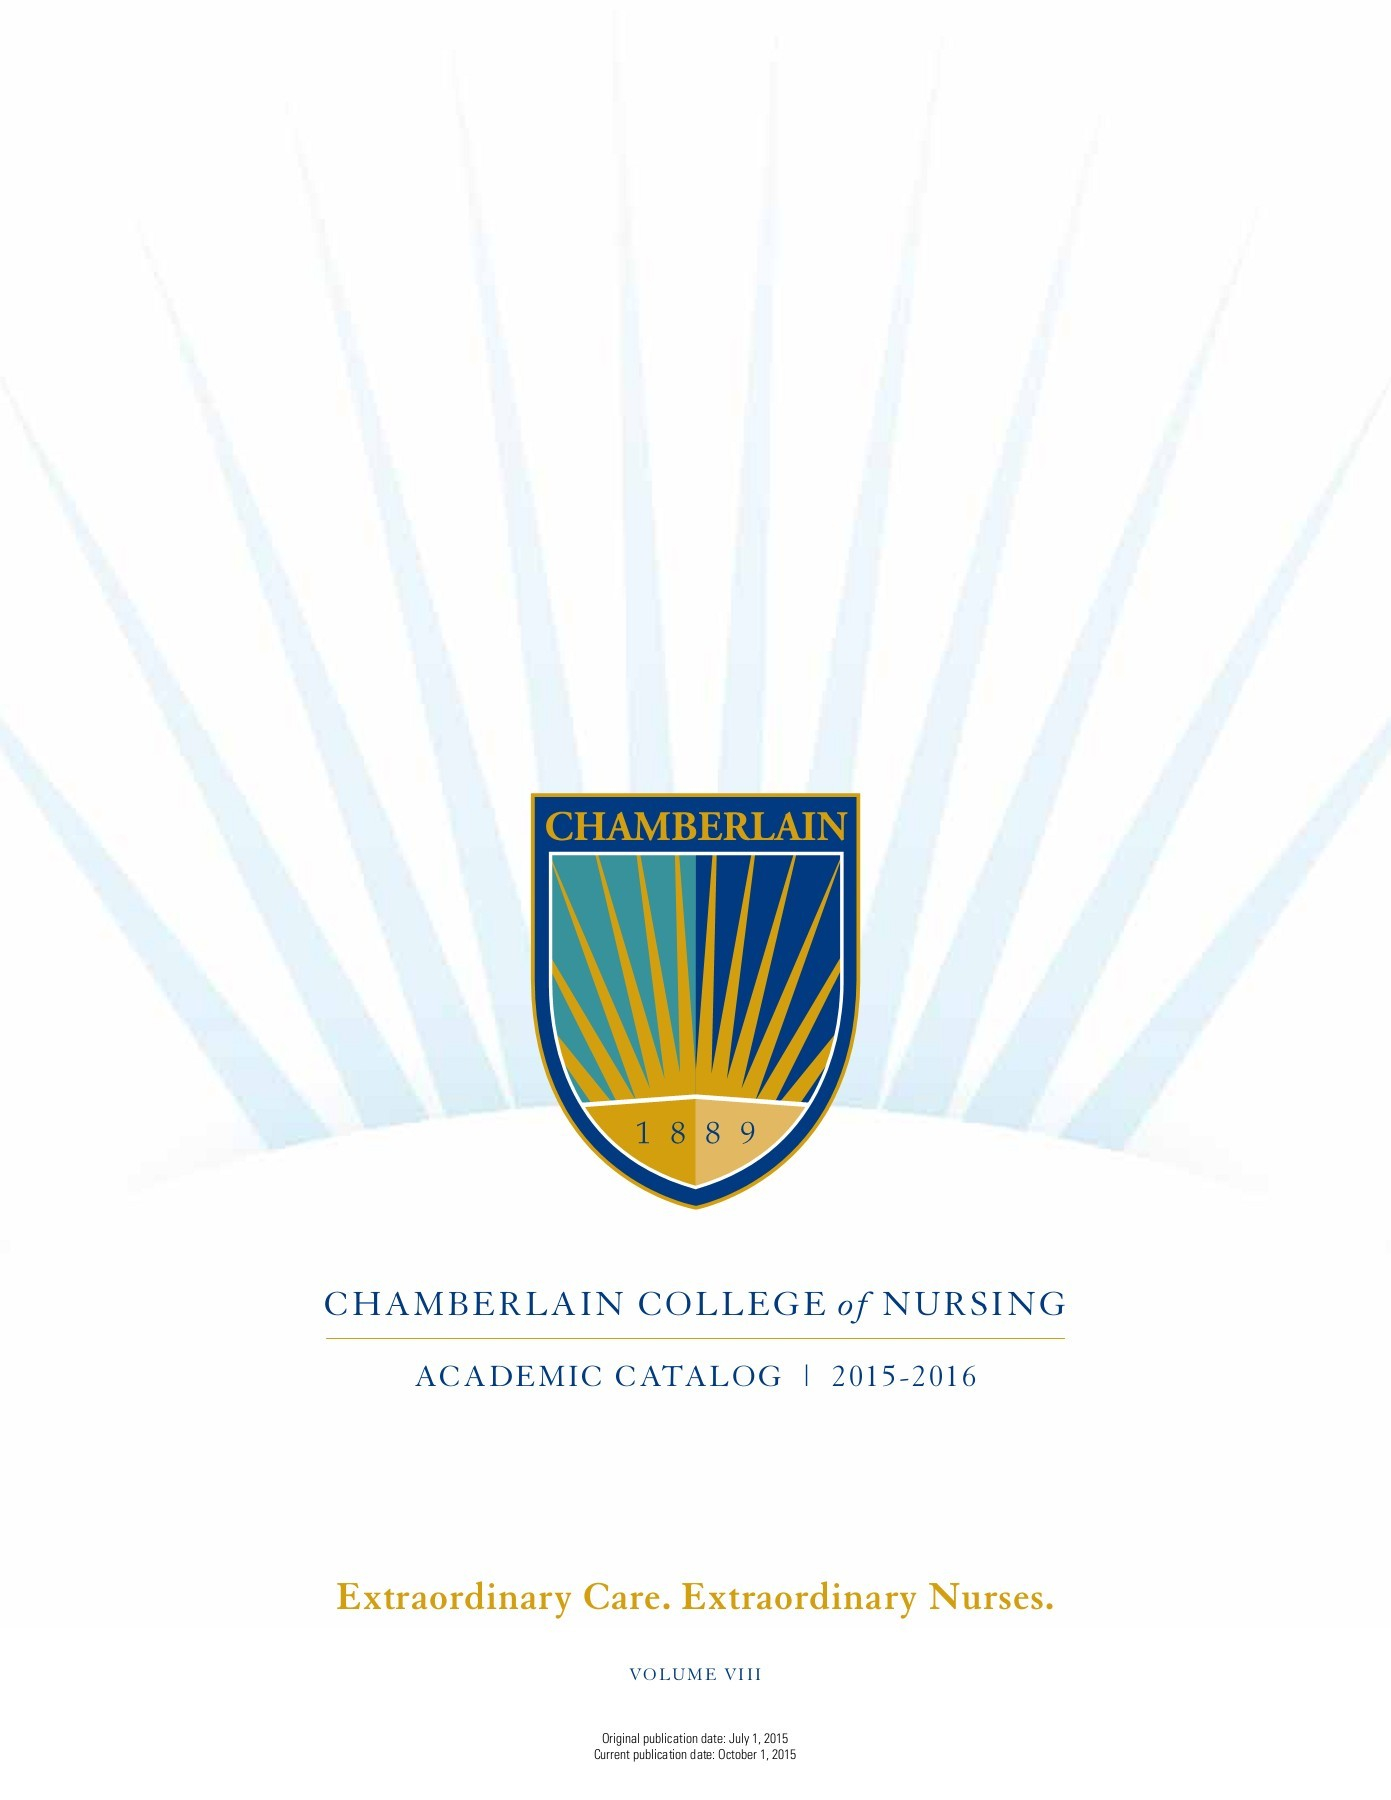 Chamberlain College Of Nursing Catalog Pages 1 - 50 - Text Regarding Chambelain College Spring Break